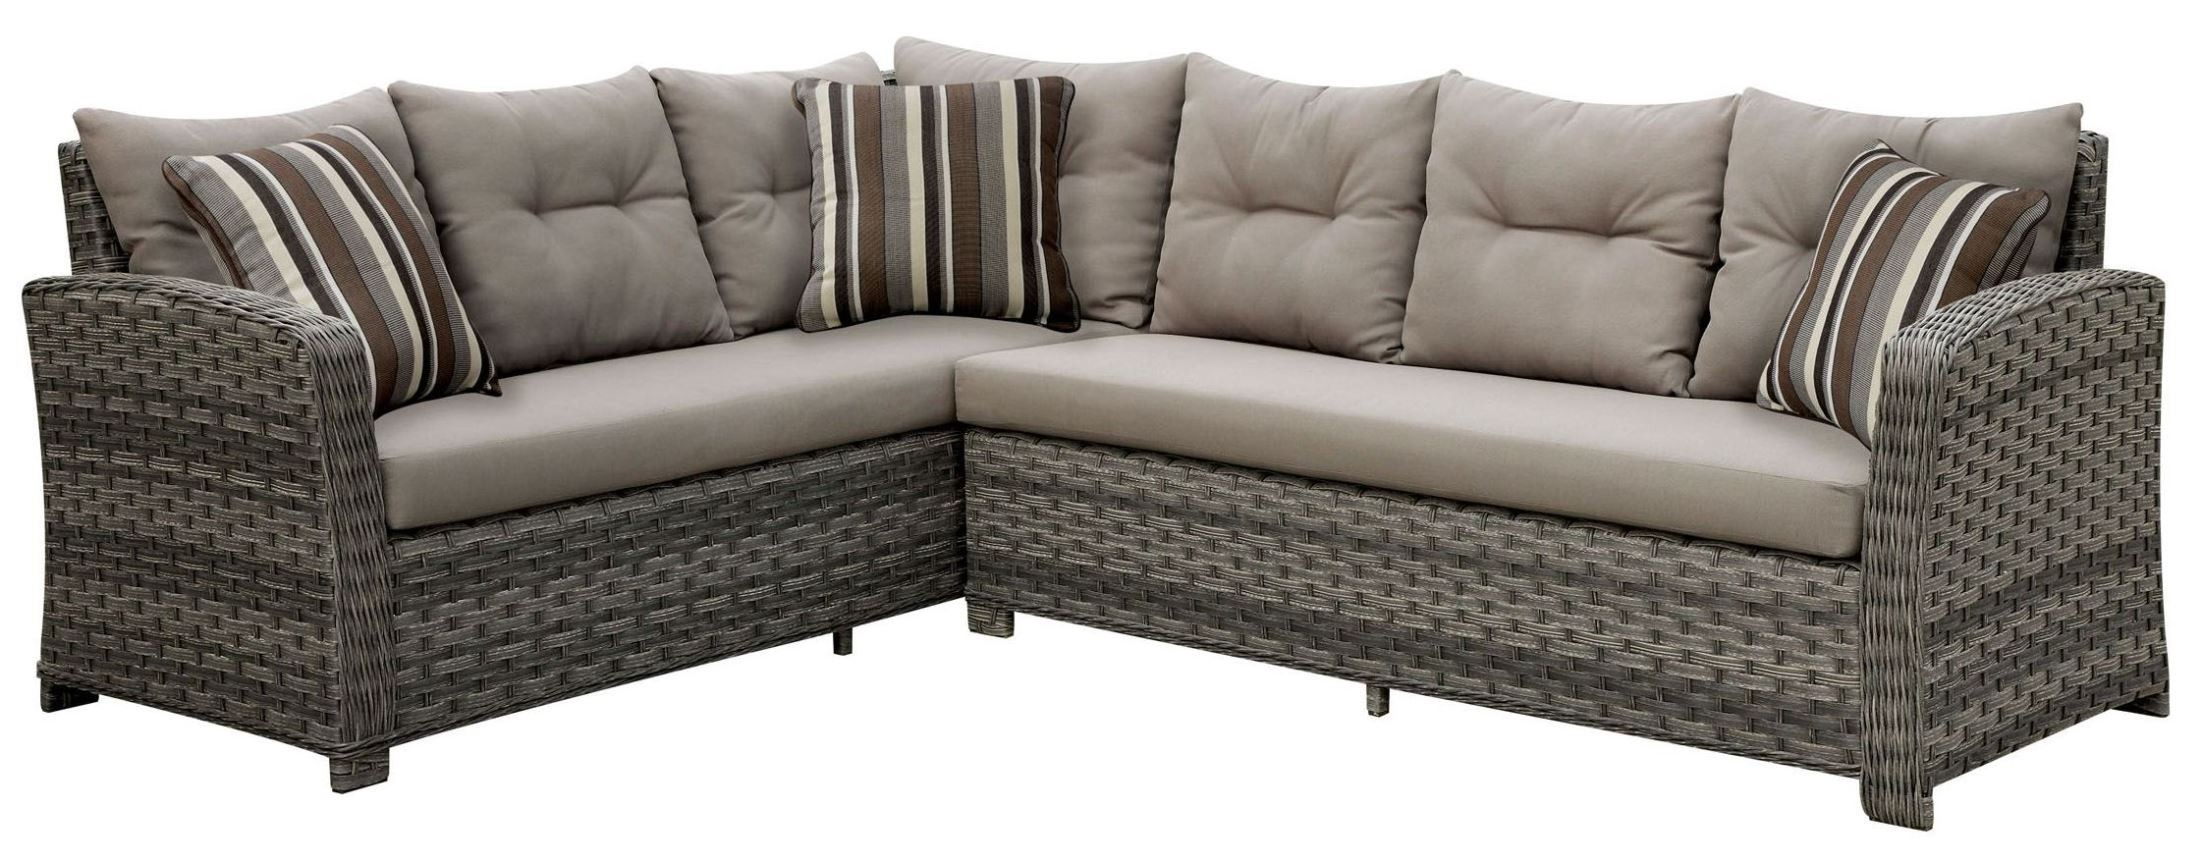 Moura Patio Sectional with Table from Furniture of America CM OS1816 SET